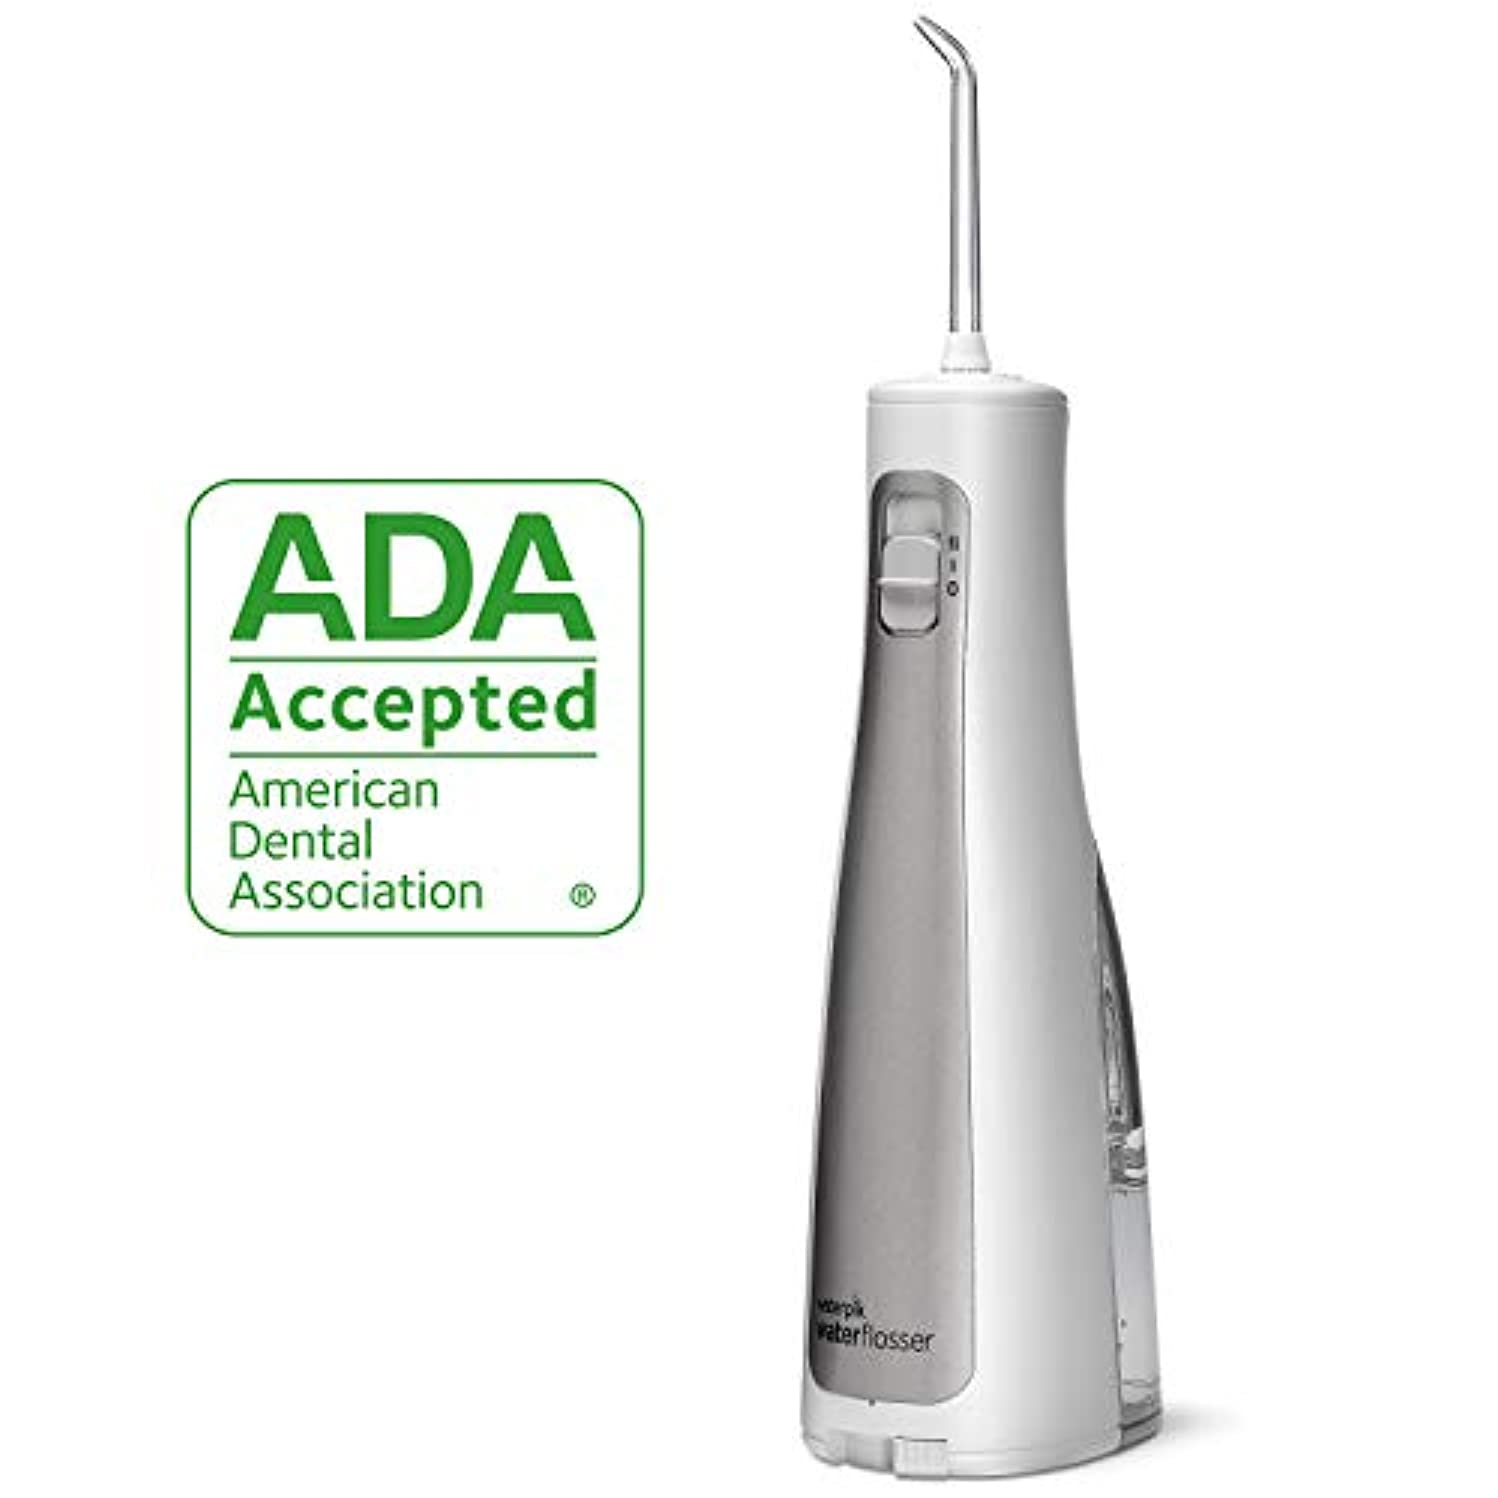 Cordless Water Flosser, Waterpik Cordless Freedom ADA Accepted Oral Irrigator, Battery Operated and Portable for Travel and Home, Waterproof with Travel Bag and 3 Jet Tips, WF-03